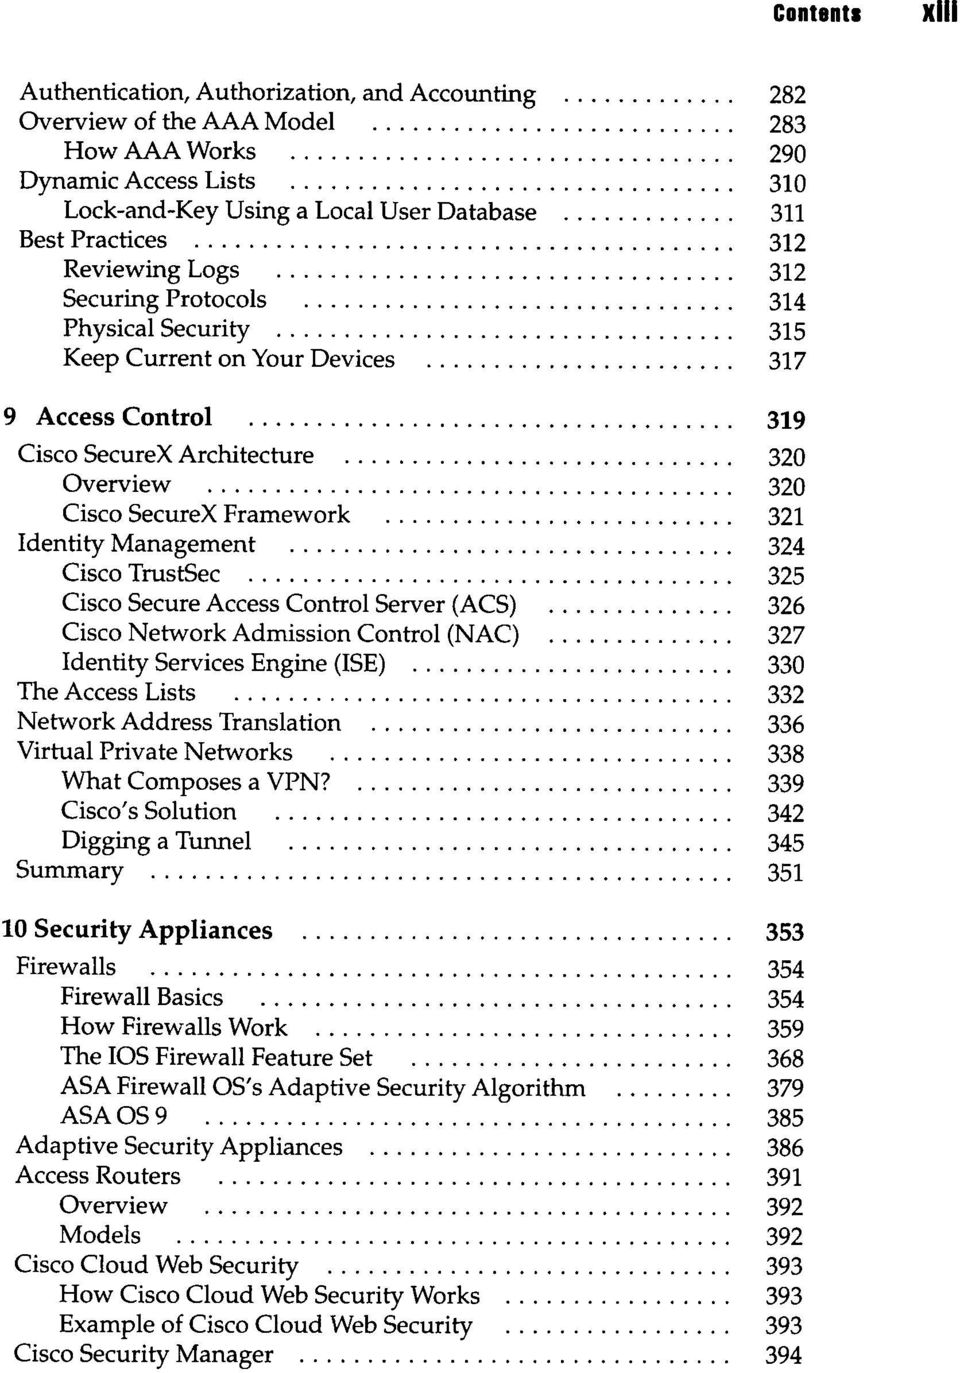 Identity Management 324 Cisco TrustSec 325 Cisco Secure Access Control Server (ACS) 326 Cisco Network Admission Control (NAC) 327 Identity Services Engine (ISE) 330 The Access Lists 332 Network